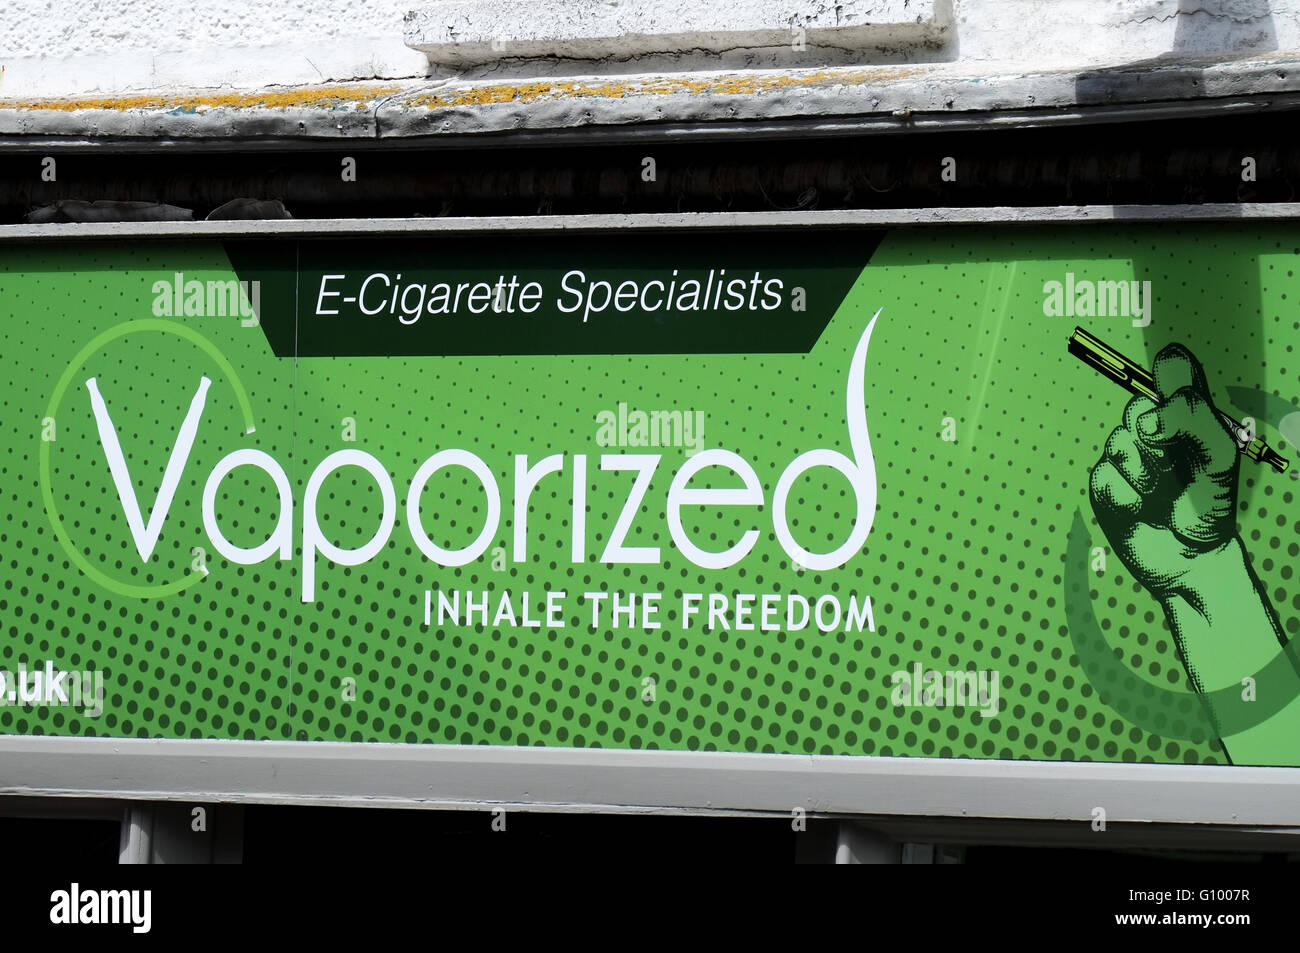 Vaporized E-Cigarette shop - Stock Image